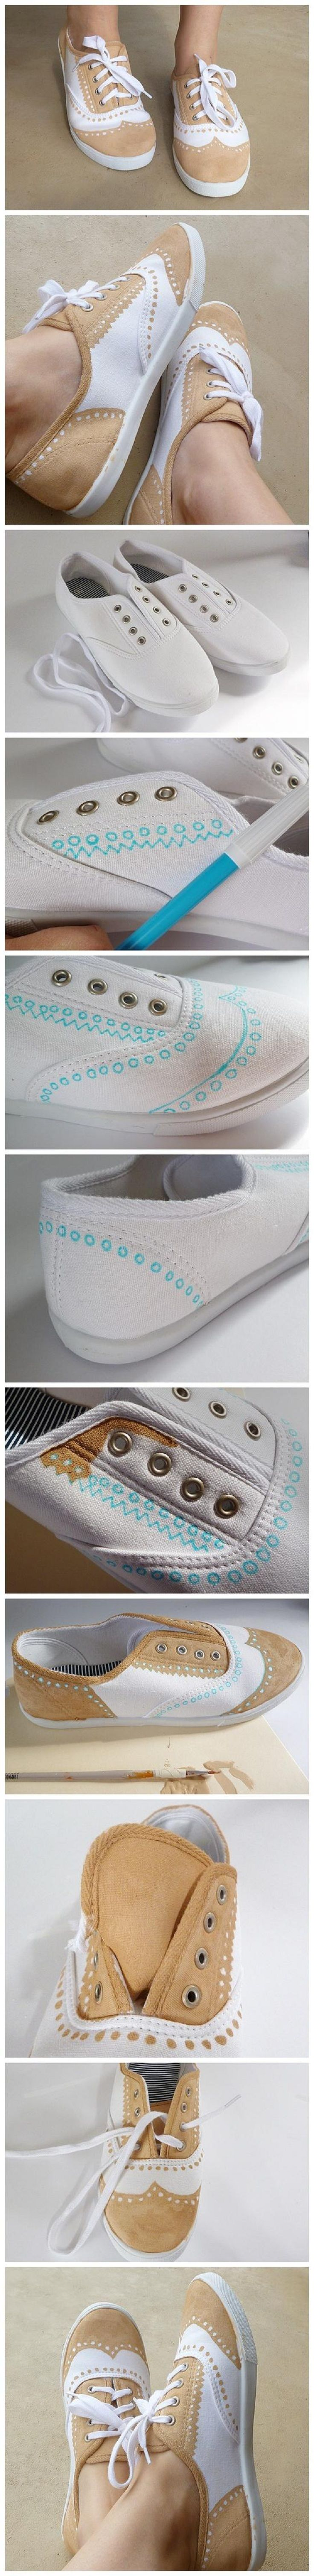 Zapatos para mujer. Utiliza Victorias blancas o similares. / Female shoes. Use white Victorias or similar. #shoe #craft